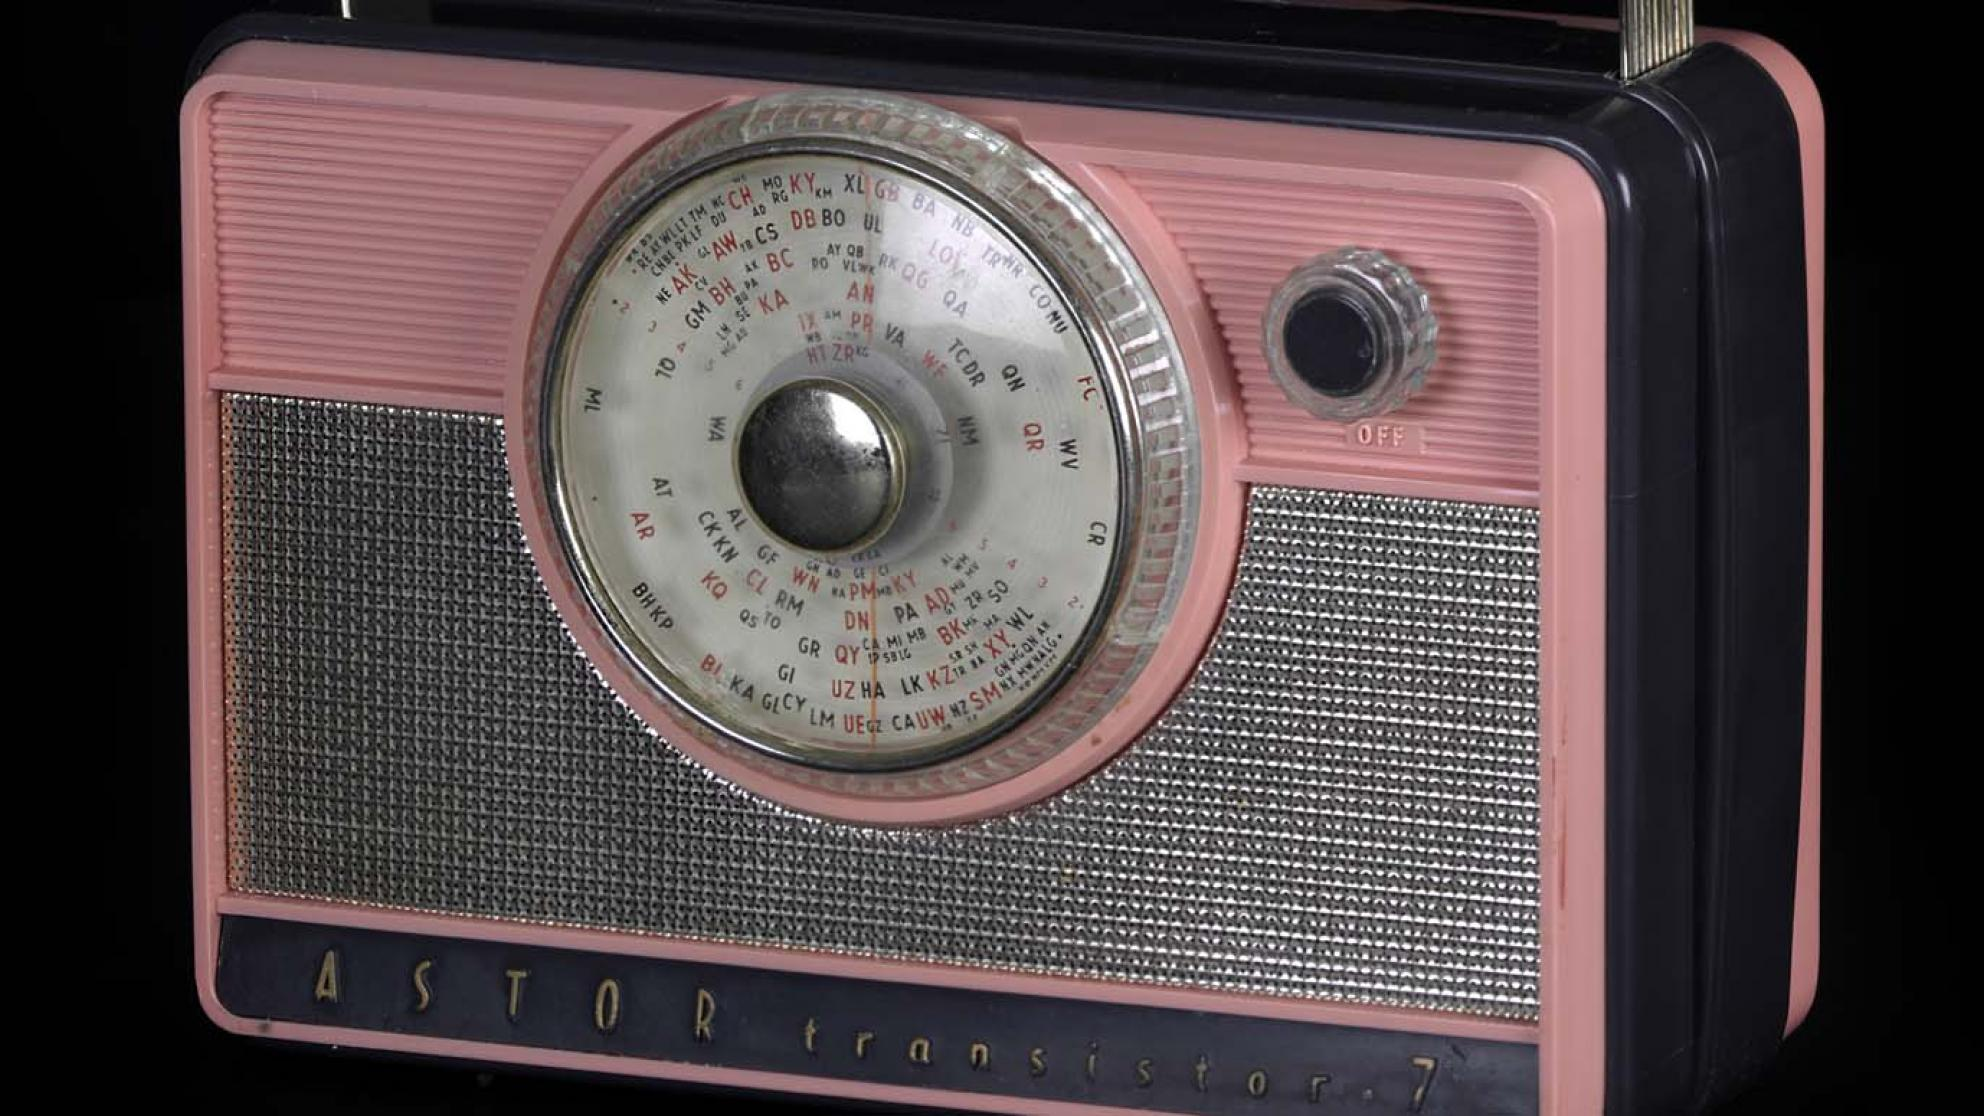 A pink and grey Astor 7 transistor radio from the 1950s or 1960s